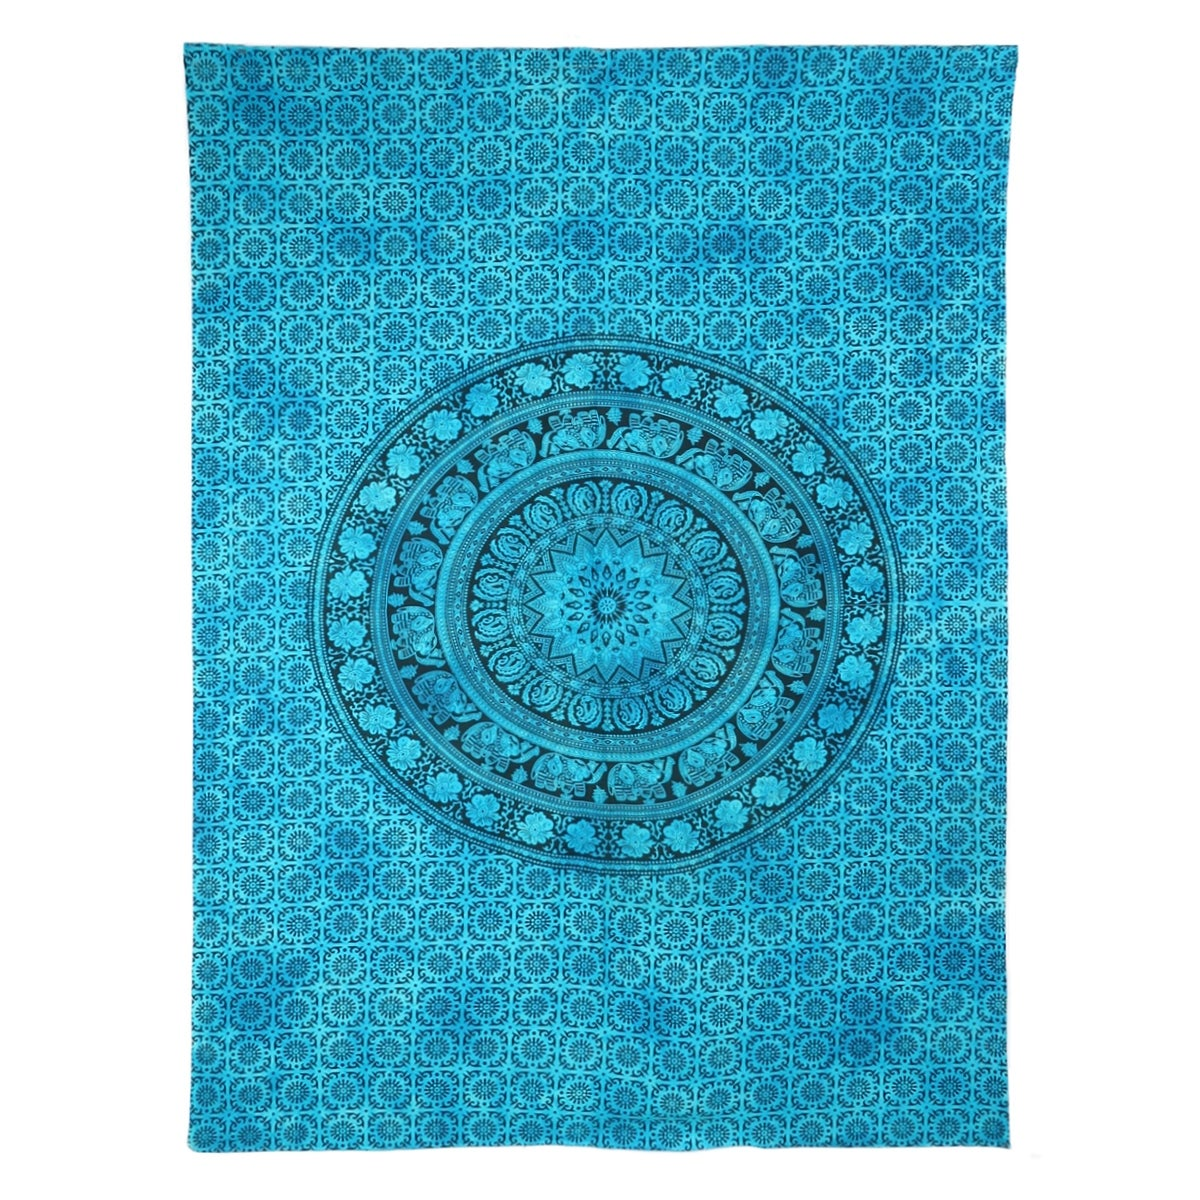 Indian Tapestry Wall Hanging Mandala Hippie Bedspread Bohemian Dorm Decor Throw